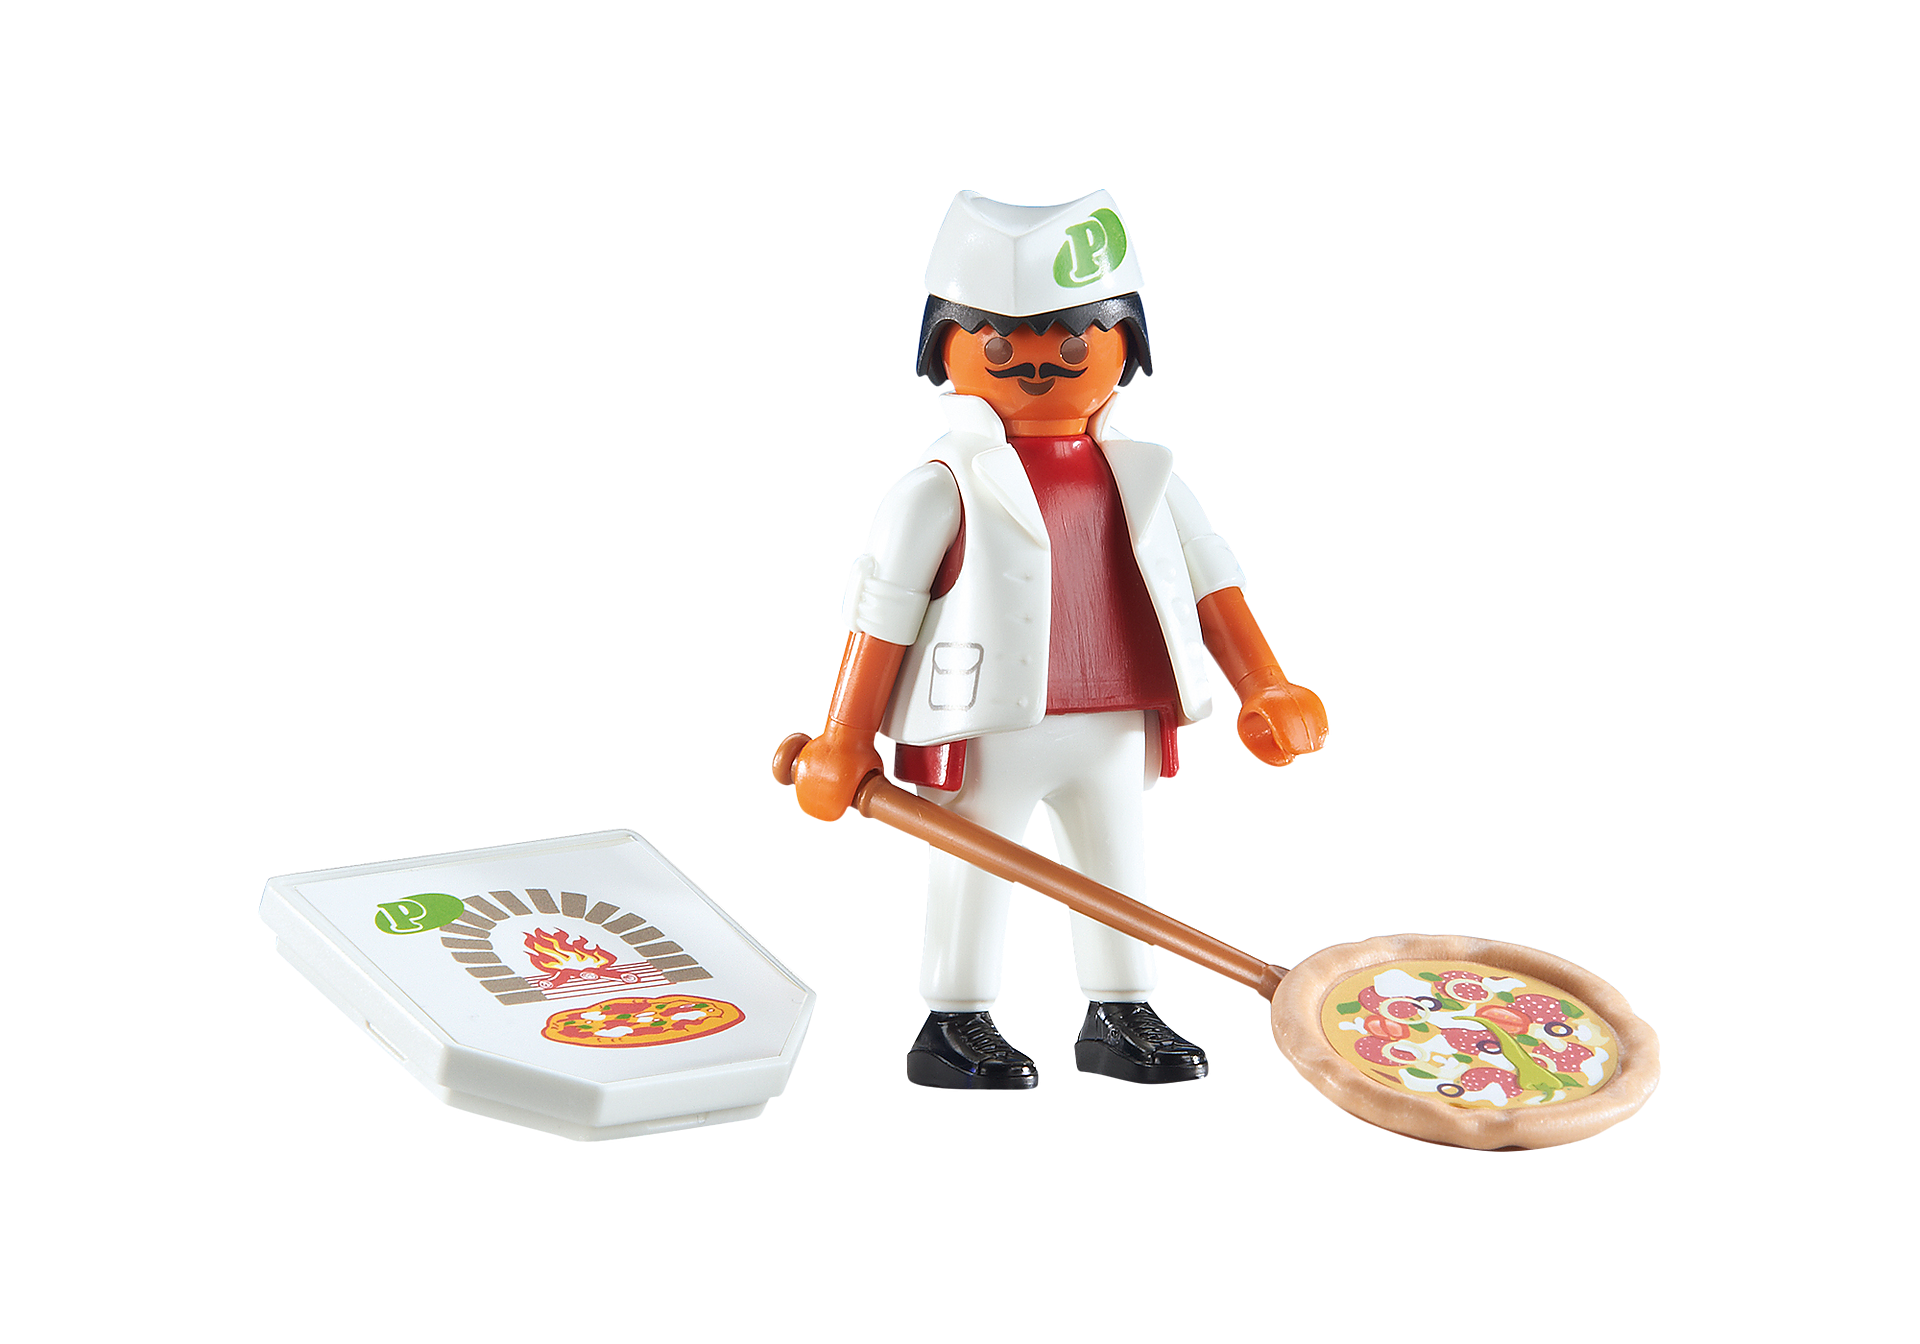 6392 Pizza baker zoom image1